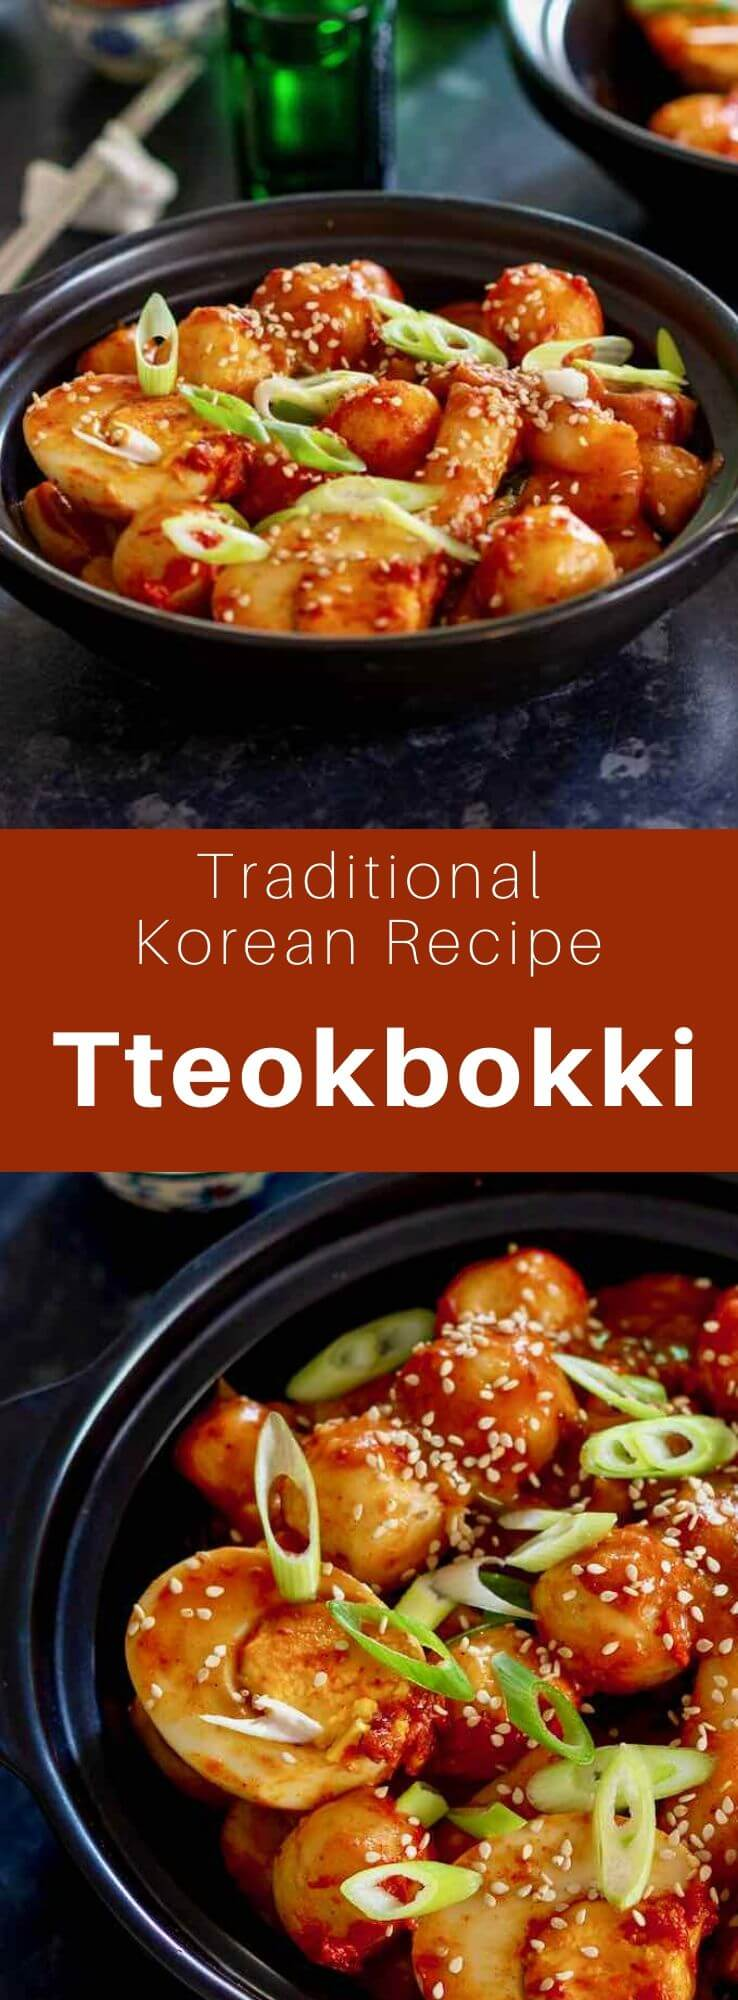 Tteokbokki (떡볶이) is a dish of Korean rice cakes (garaetteok), most commonly stir-fried in a spicy sauce made from gochujang (red chilli paste) and a savory broth. #KoreanFood #KoreanRecipe #KoreanCuisine #WorldCuisine #196flavors